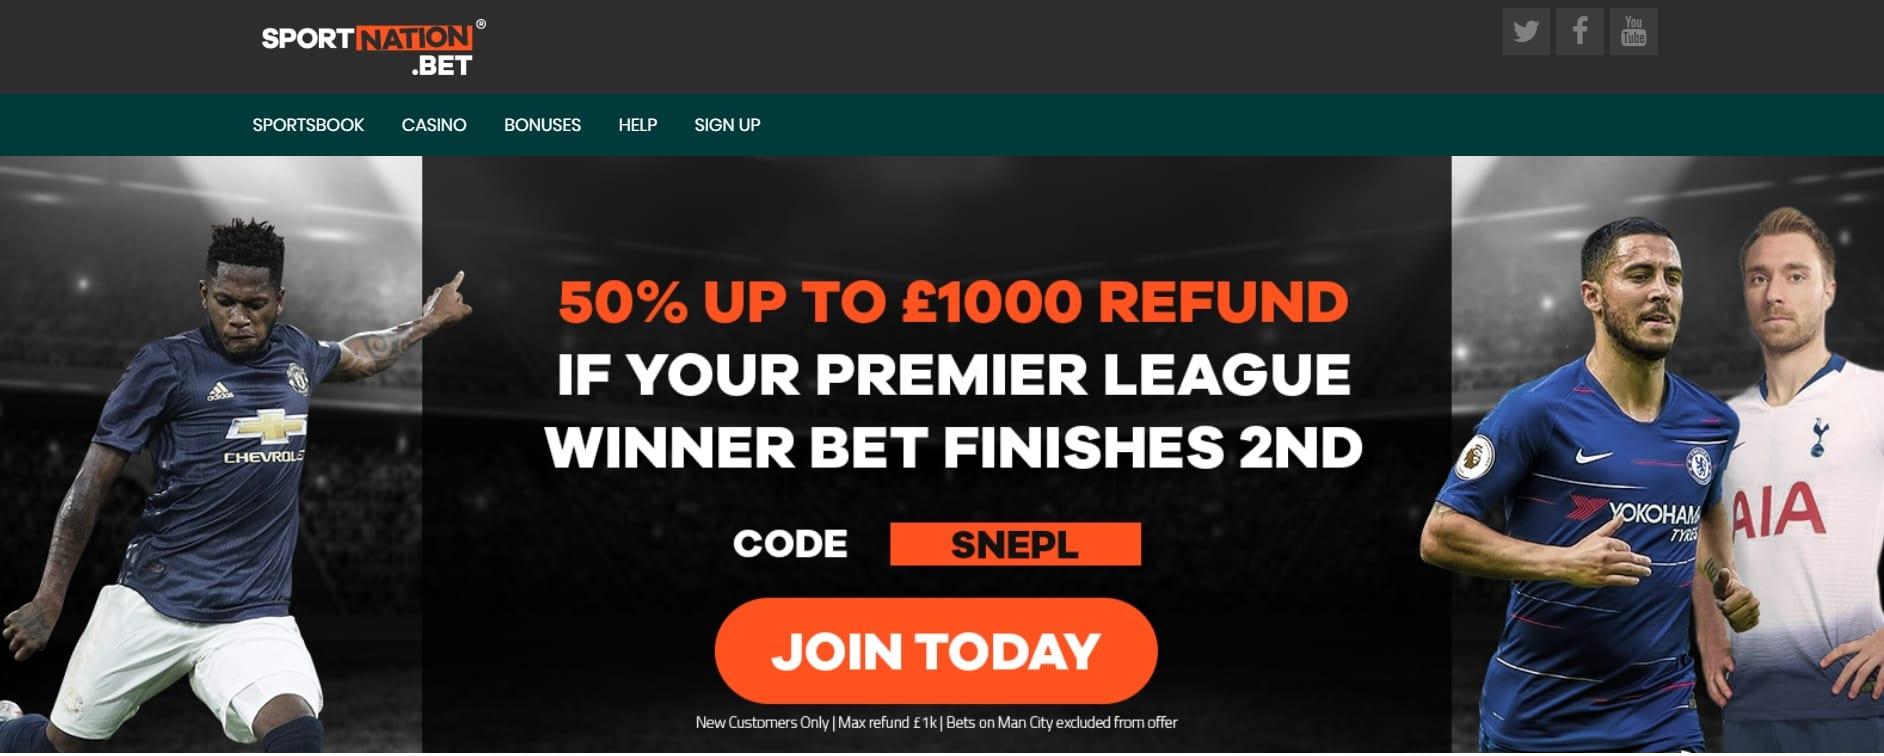 Where To Bet On Premier League Winner